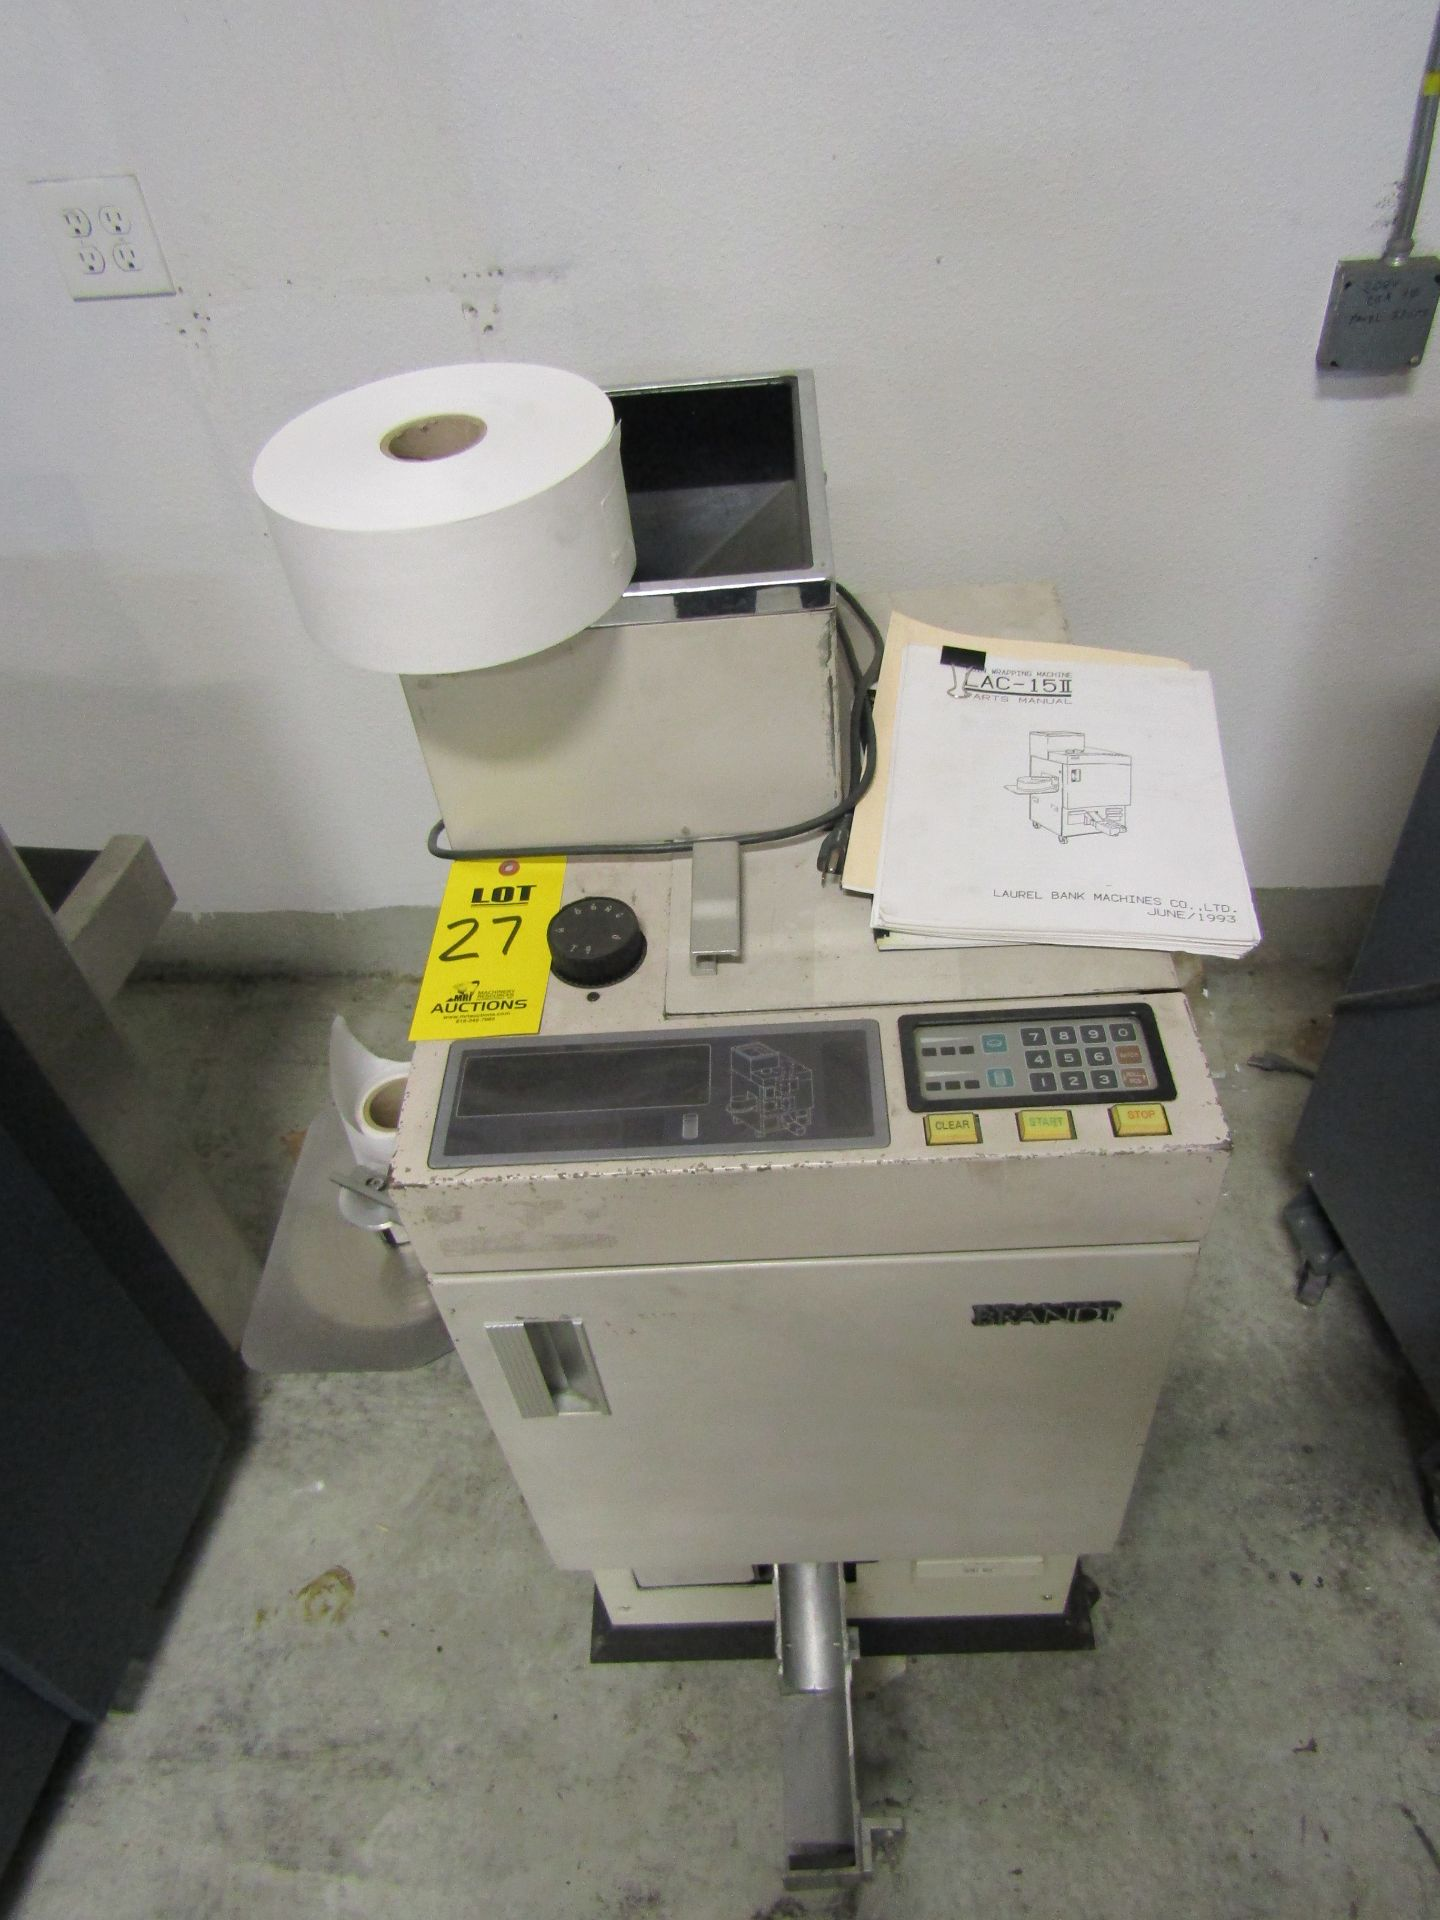 Lot 27 - BRANDT Automatic Coin Wrapping Machine with Spare Roll of Packing Paper, Model 2435120, S/N 698498